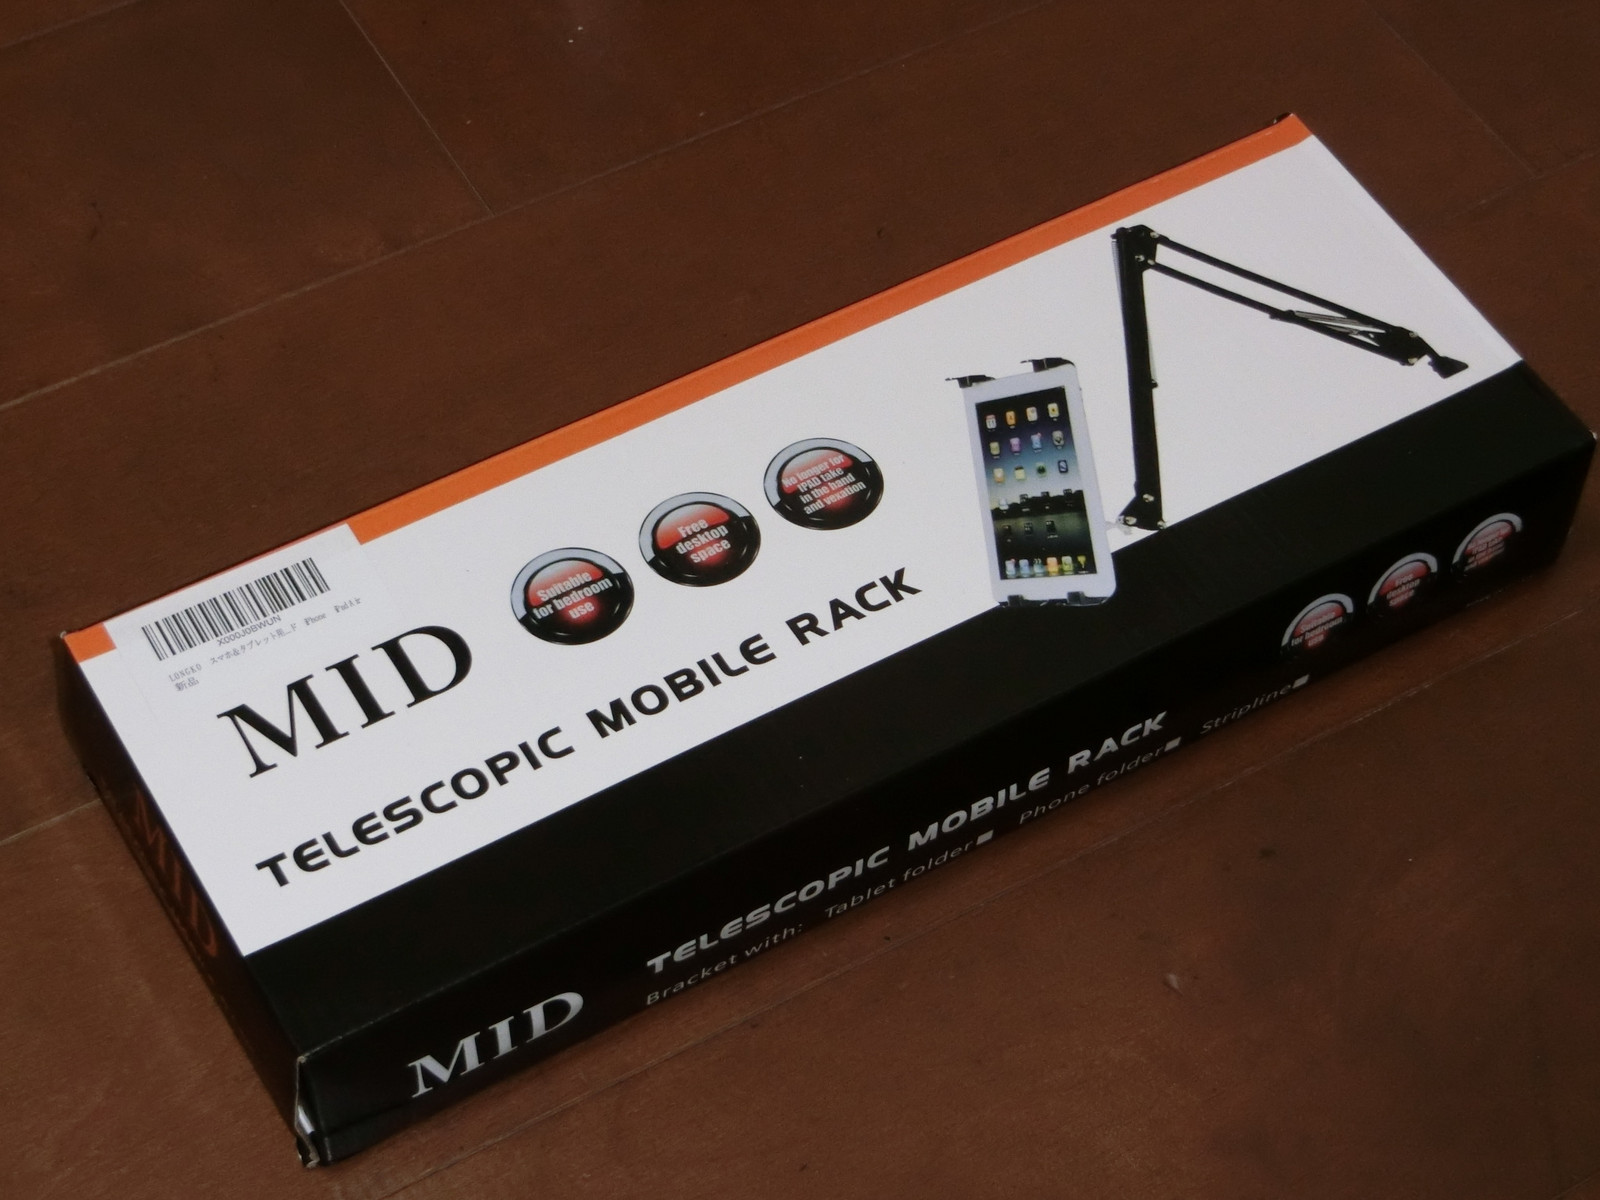 1_mid_telescopic_mobile_rack_1